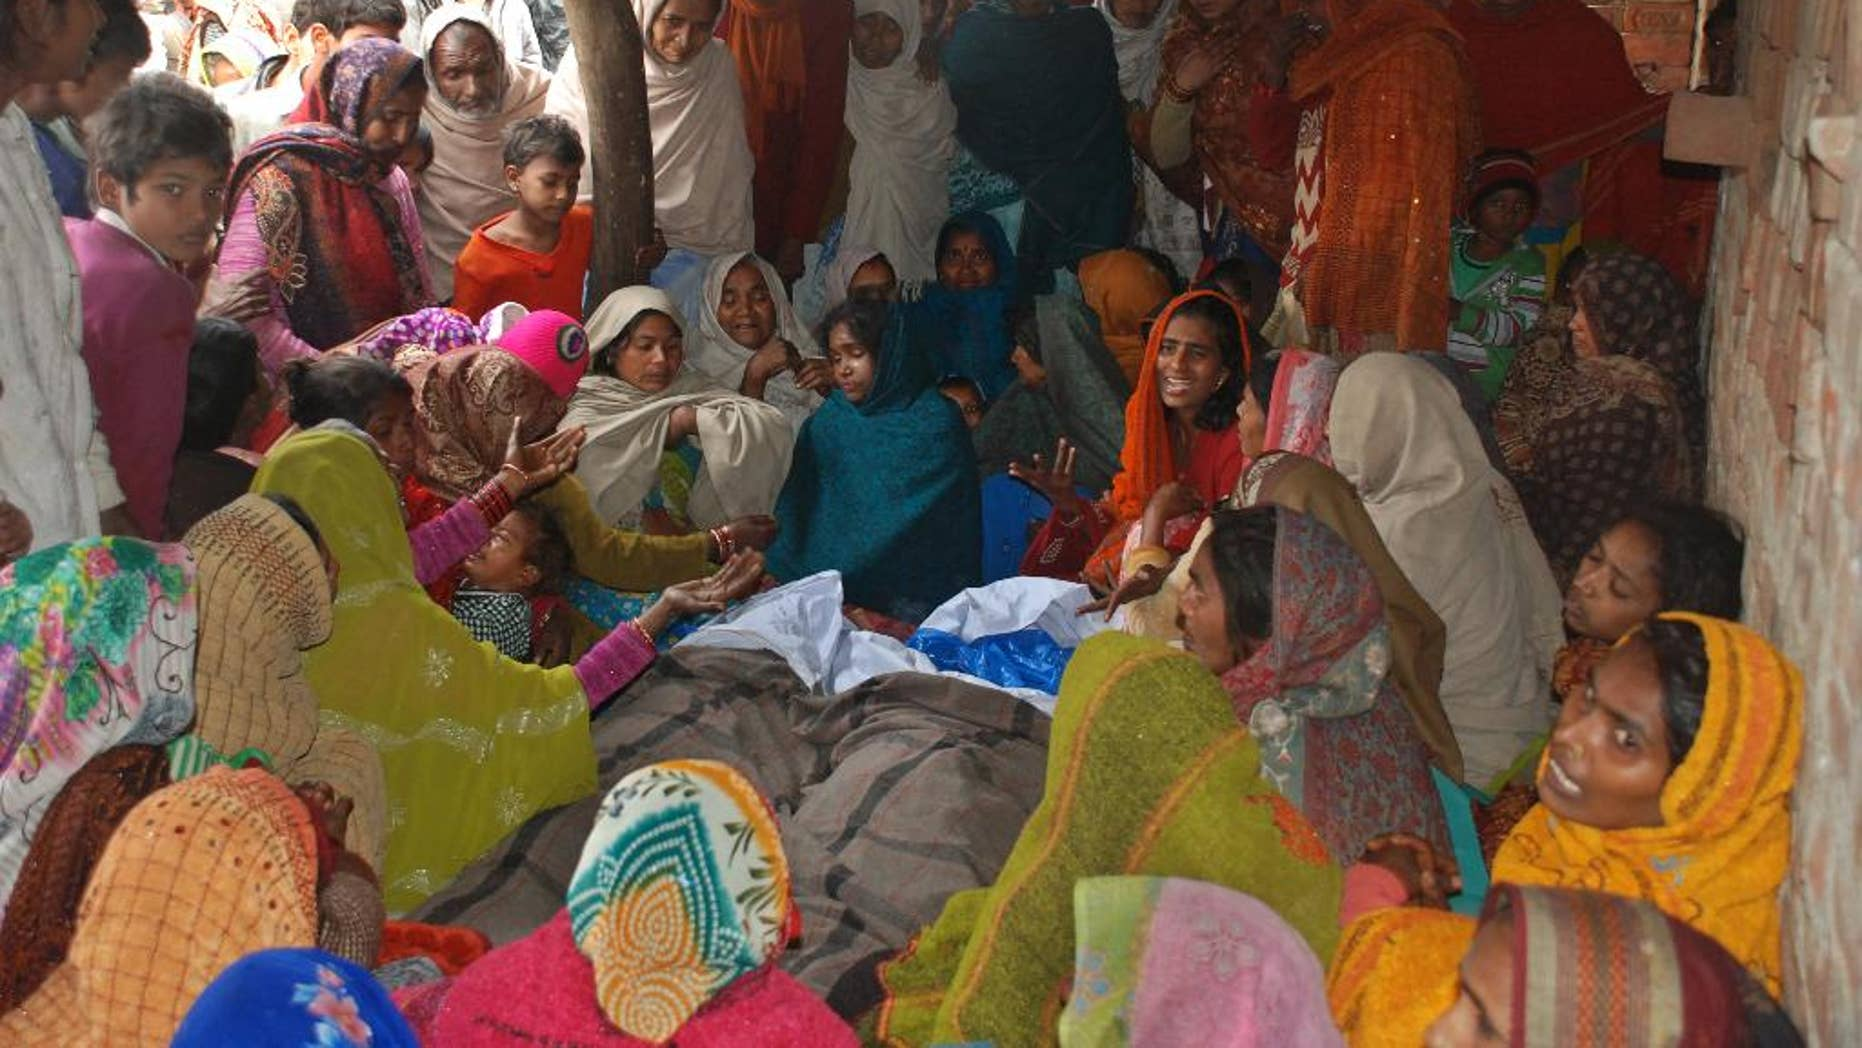 Indian women mourn around the bodies of two men, who died after consuming a bad batch of bootleg liquor in Datli village, about 30 kilometers (almost 20 miles) southwest of Lucknow, India, Tuesday, Jan. 13, 2015. More than 25 people were killed and at least 160 others hospitalized, officials said Tuesday. Many of the victims were among more than 200 people who had gathered to watch a cricket match Sunday evening in the village. (AP Photo/Sanjay Sonkar)